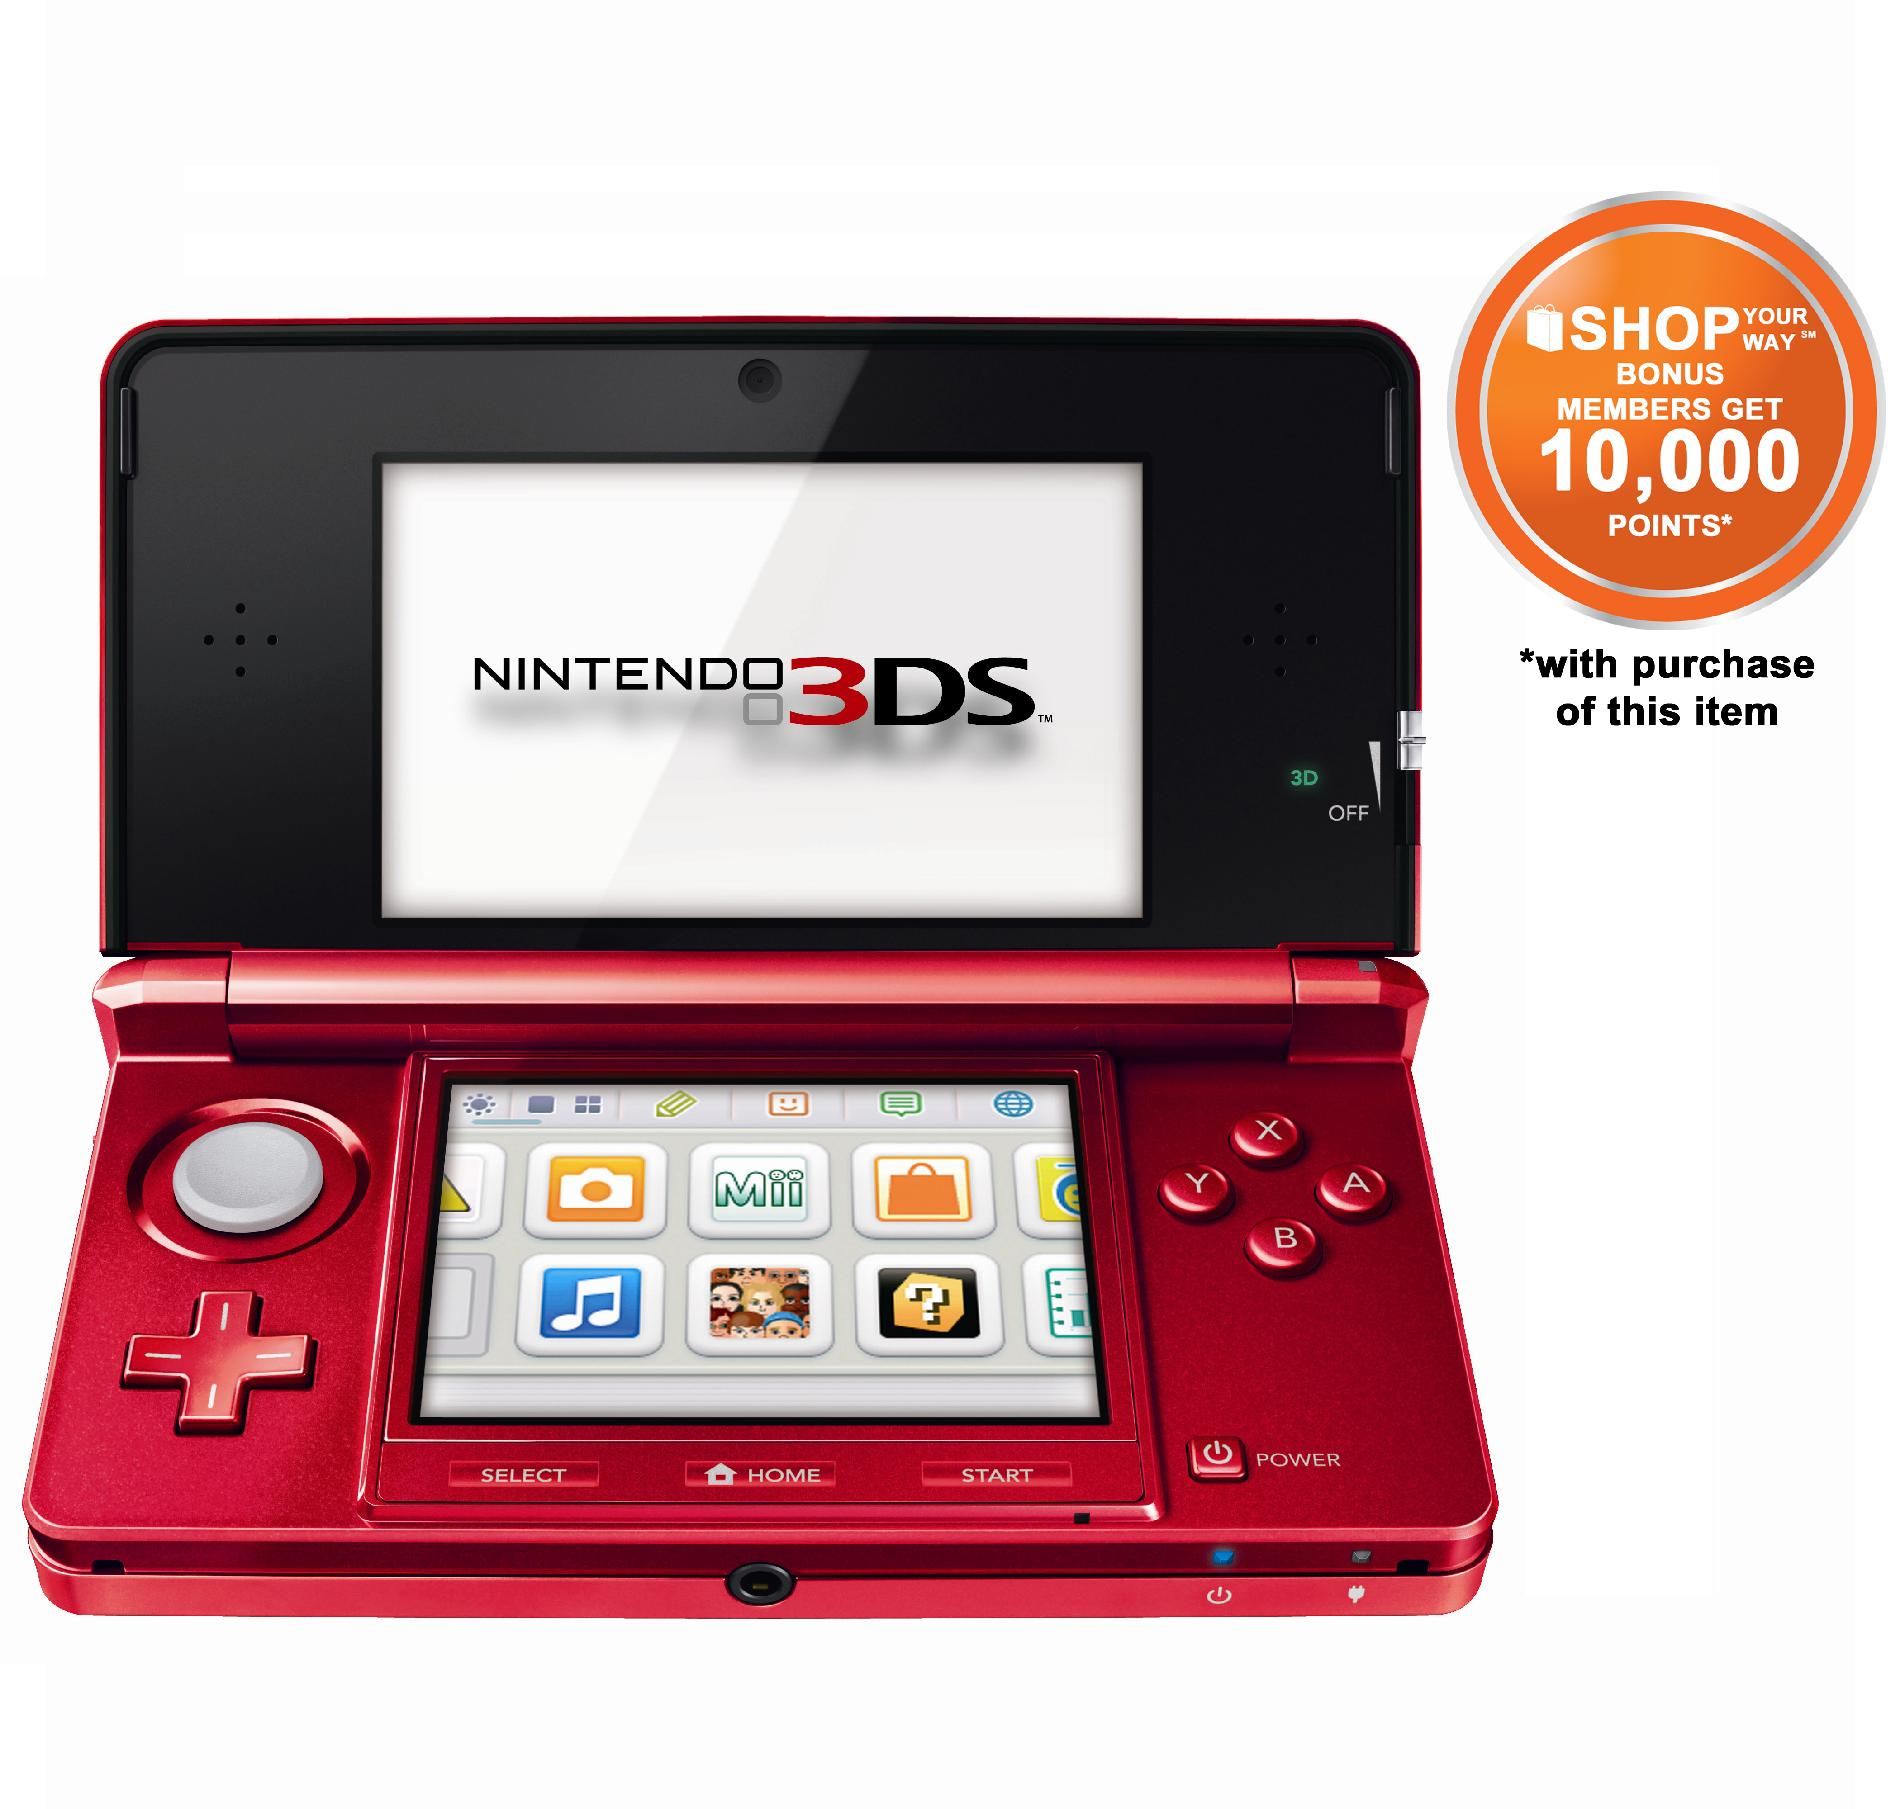 3DS Handheld Game Console - Flame Red